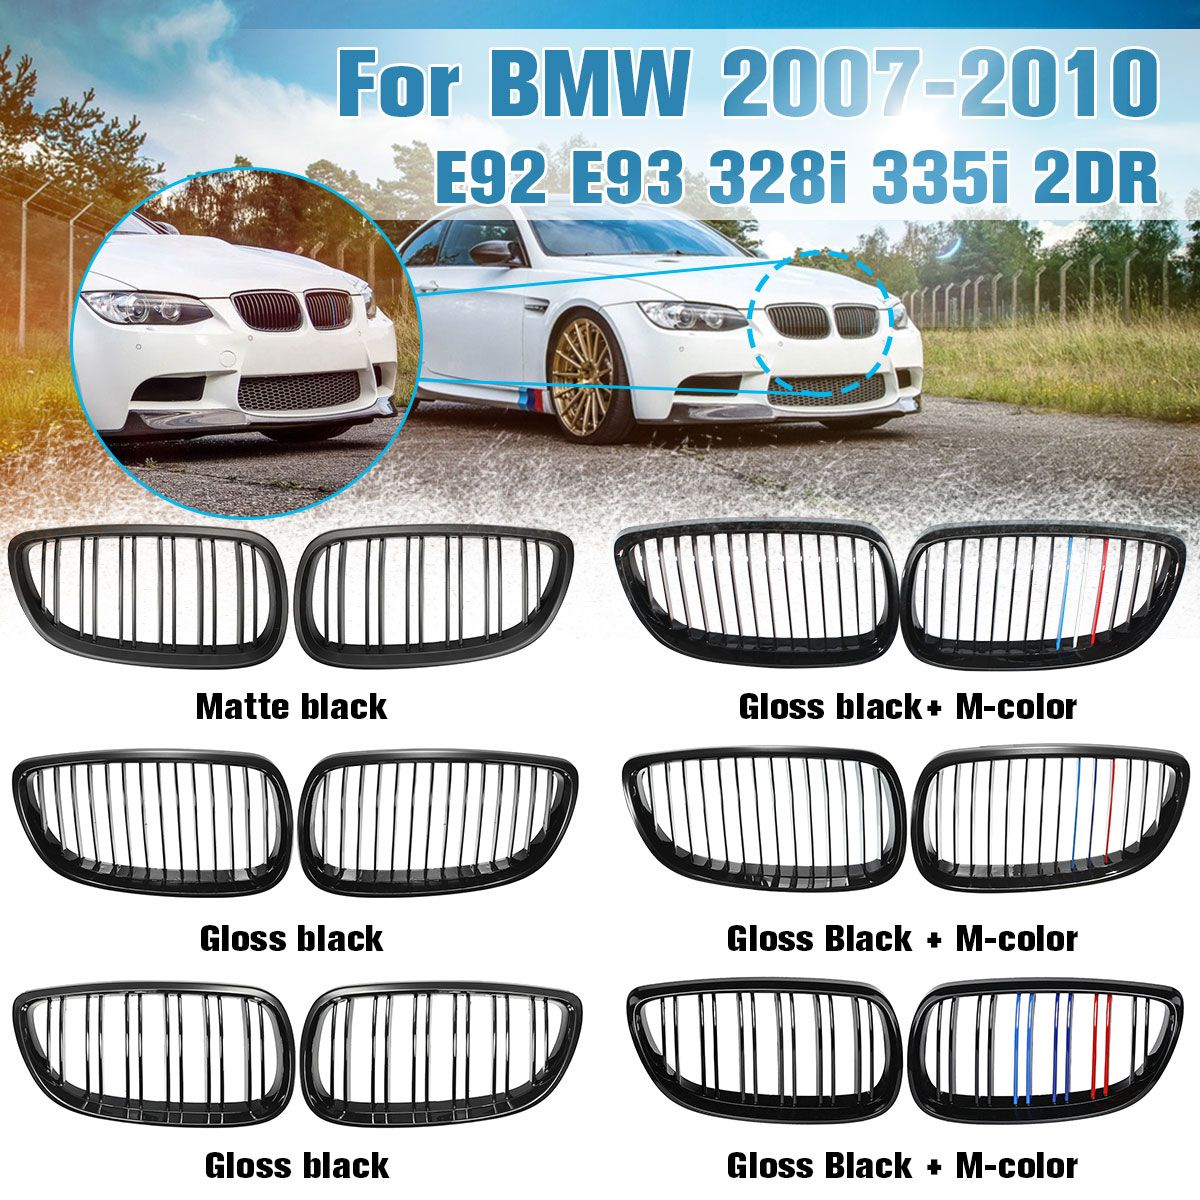 Front Grille Kidney Grill For BMW E92 E93 M3 328i 335i 2Door 2007 2008 2009 2010 Car Styling Gloss Matte Black M-color Dual Line